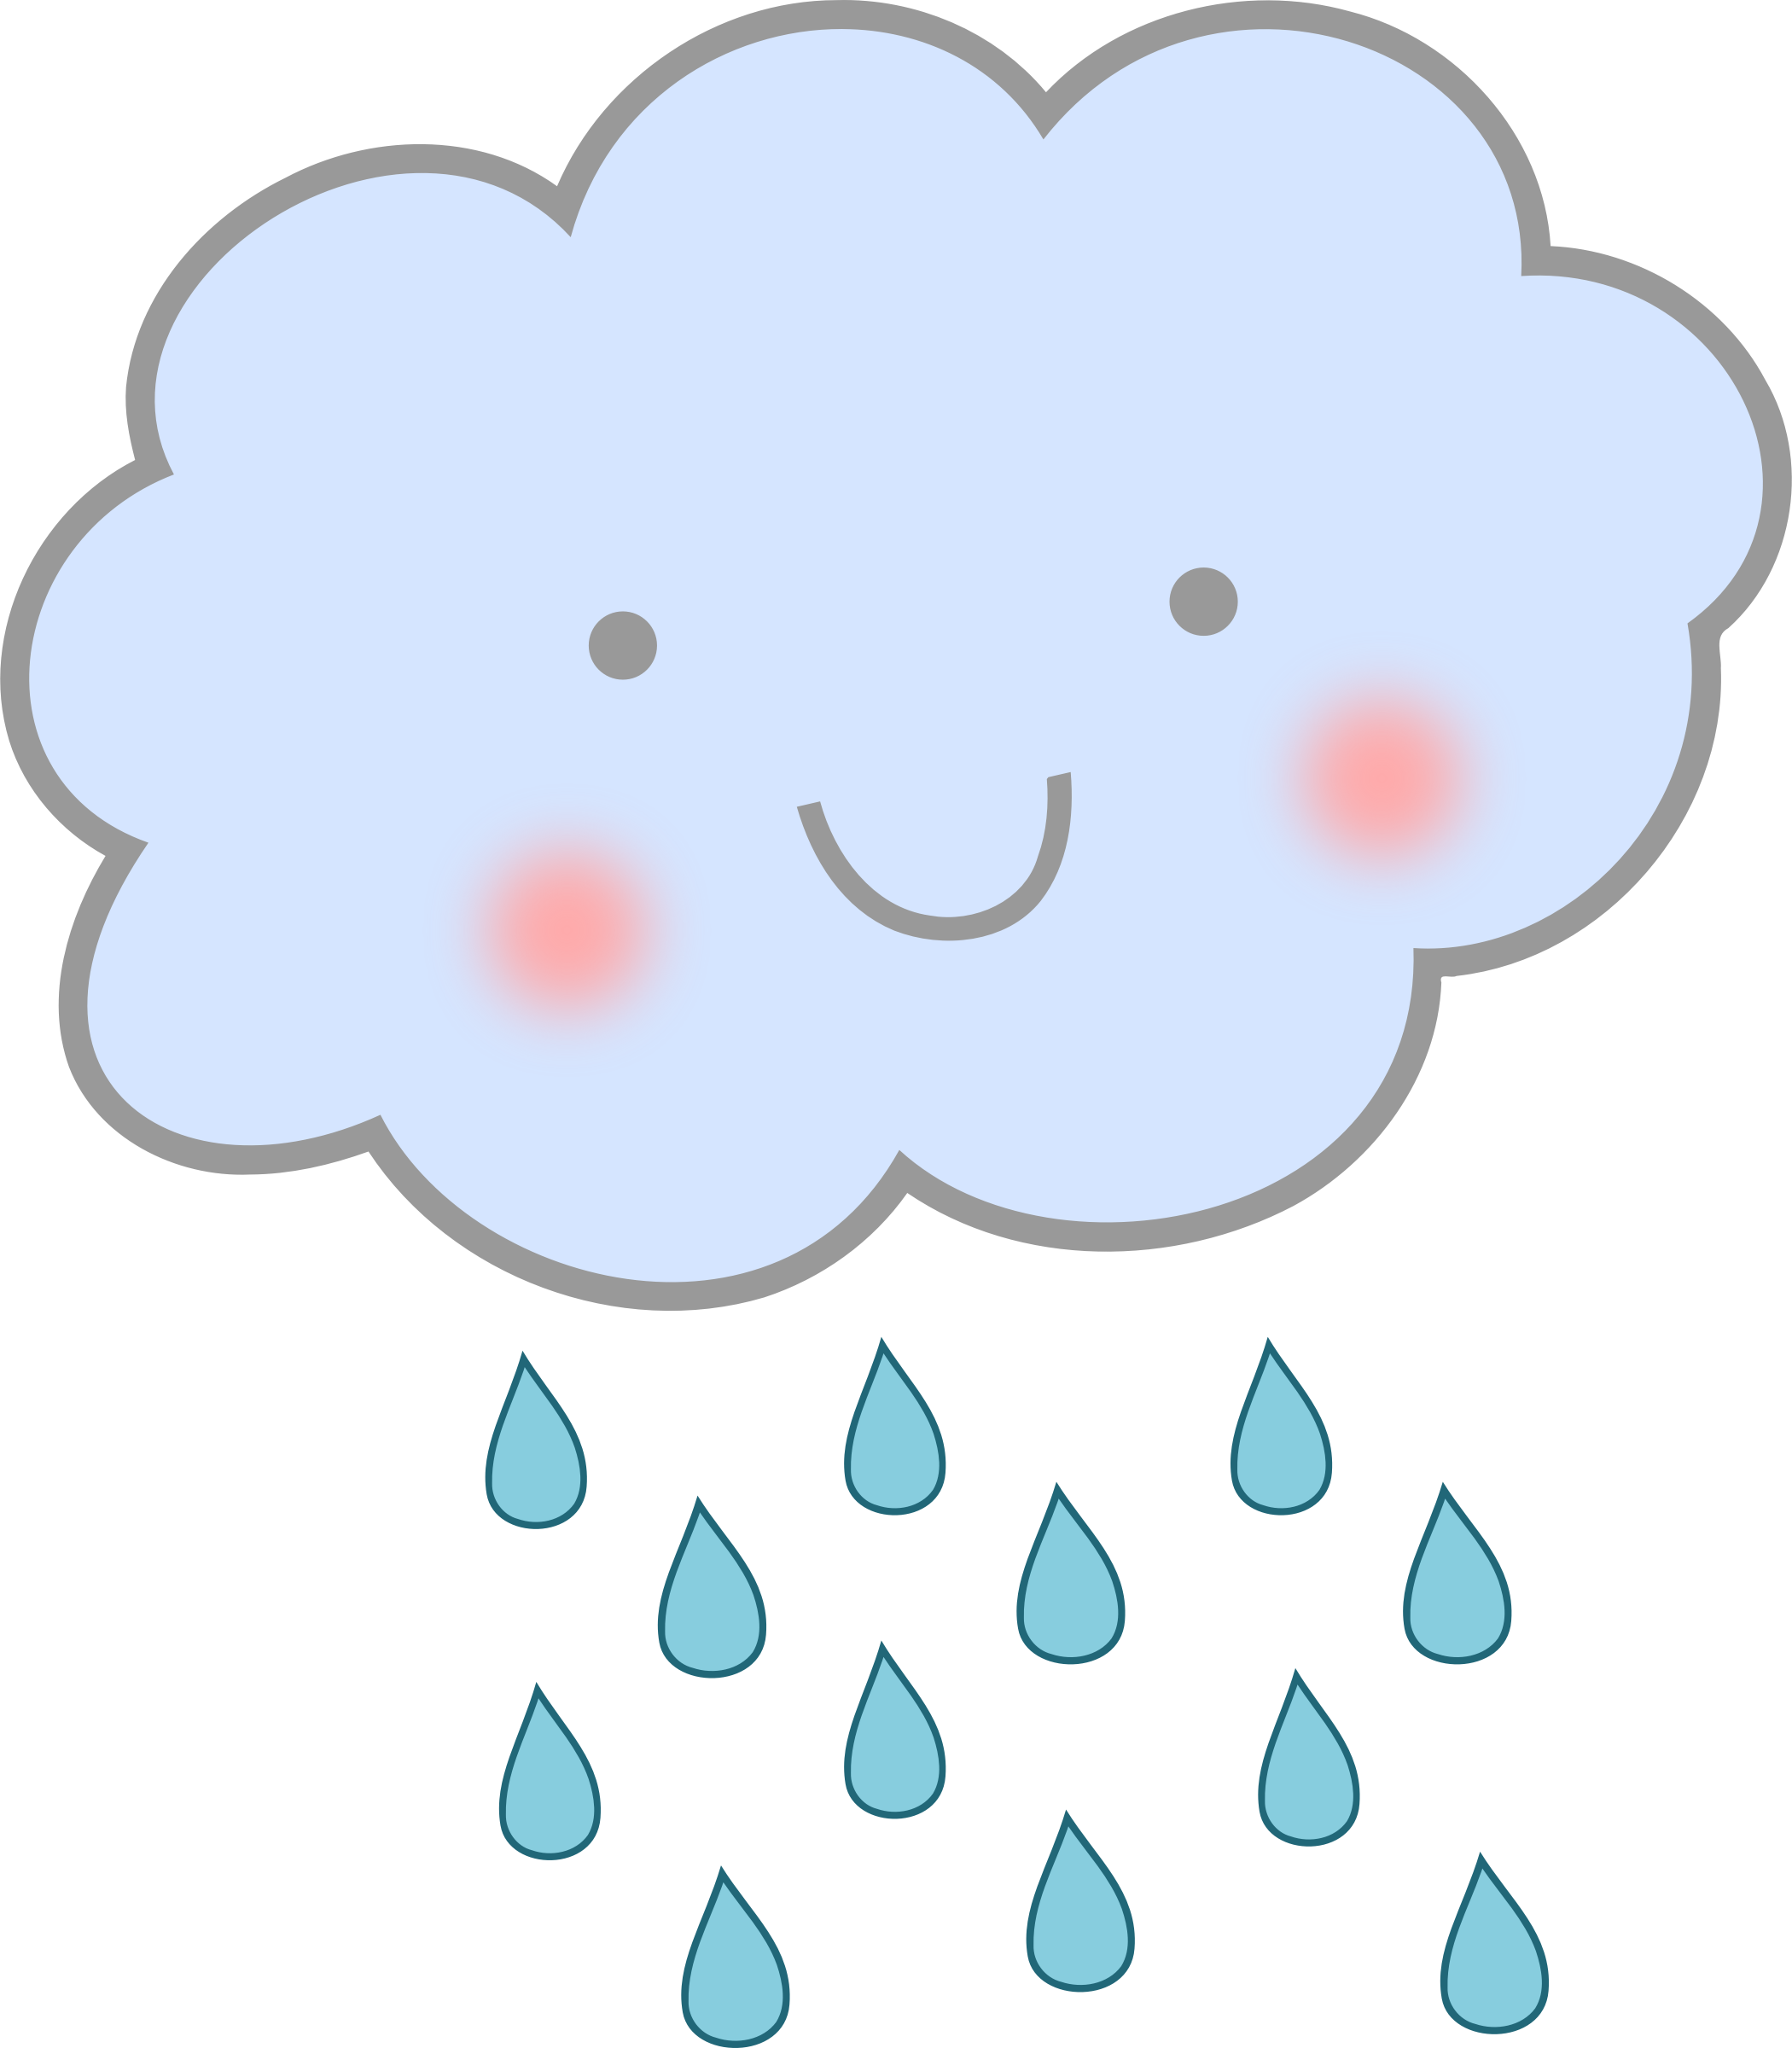 Clouds clipart cute Png Weather Rain pics Rain